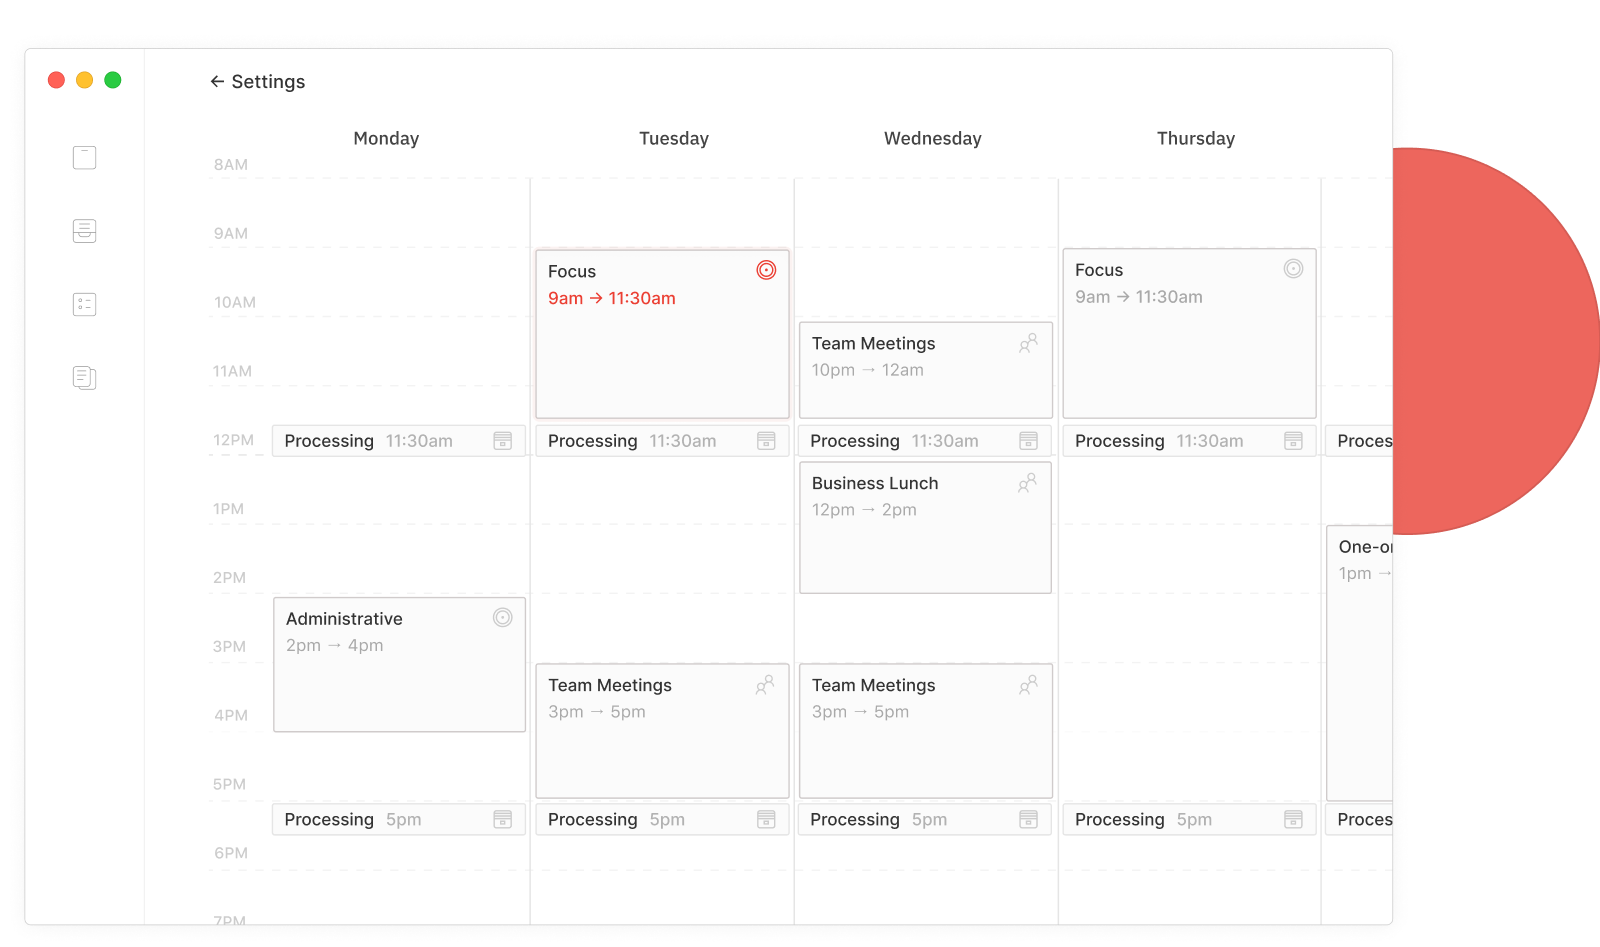 Define slots to create your own Routine during the week